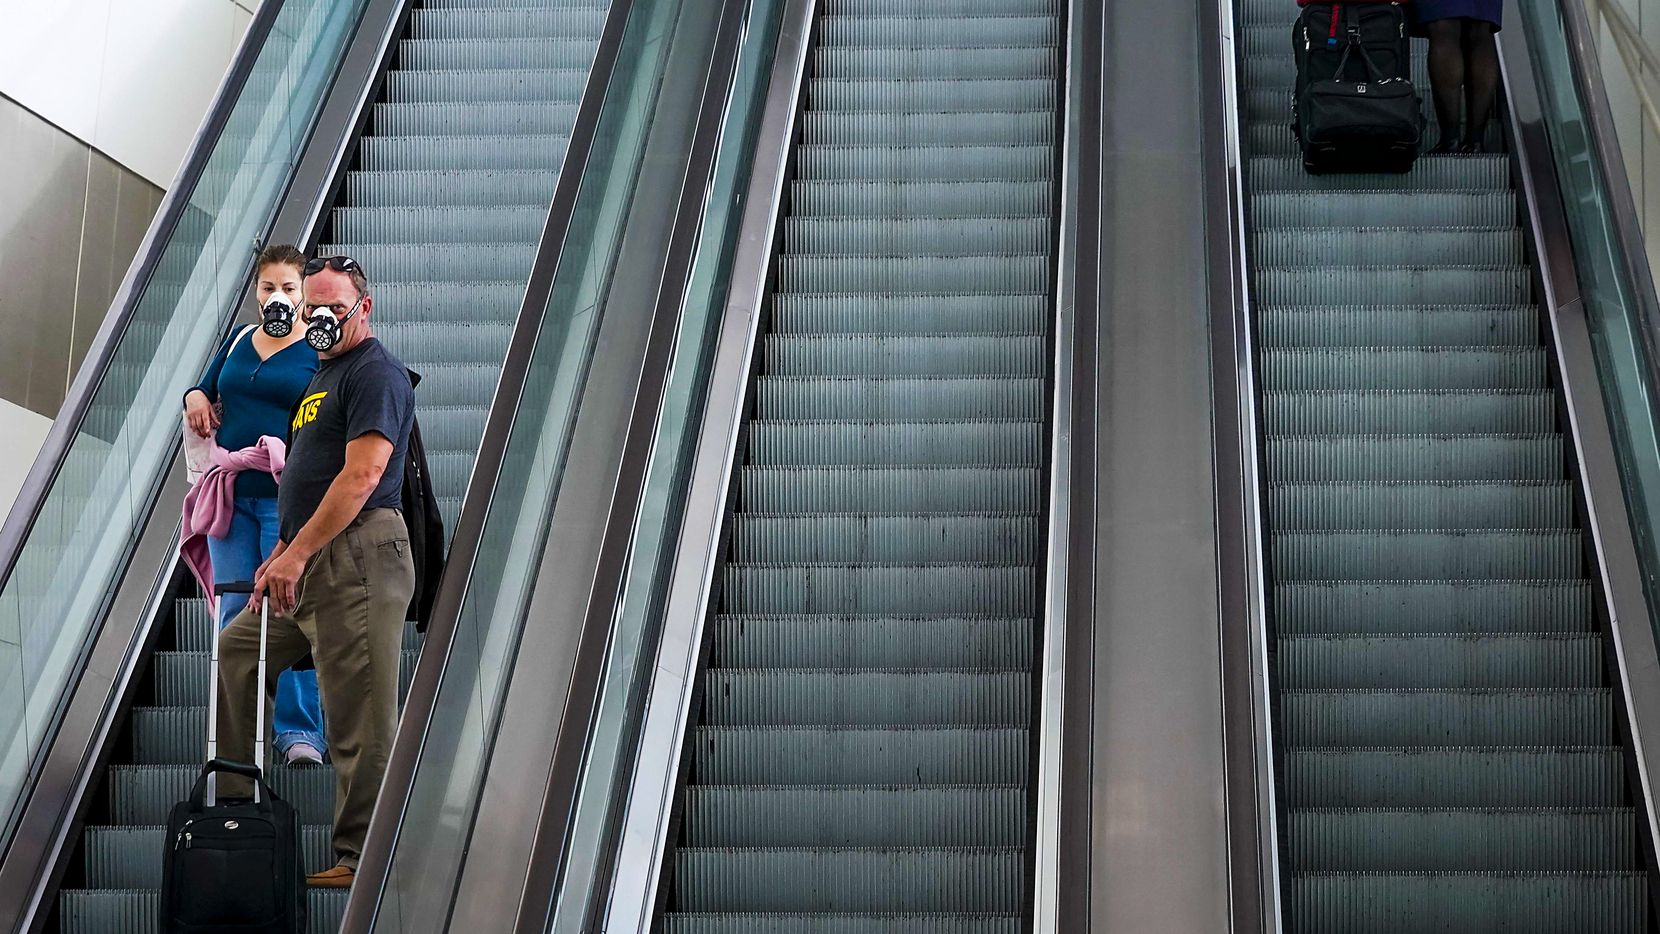 Passengers wearing face masks due to the new coronavirus ride an escalator at at  Dallas Fort Worth International (DFW) Airport Terminal B on Friday, March 20, 2020. For the day TSA reported 593,167 travelers nationwide, down from 2,559,307 on the same date in 2019.